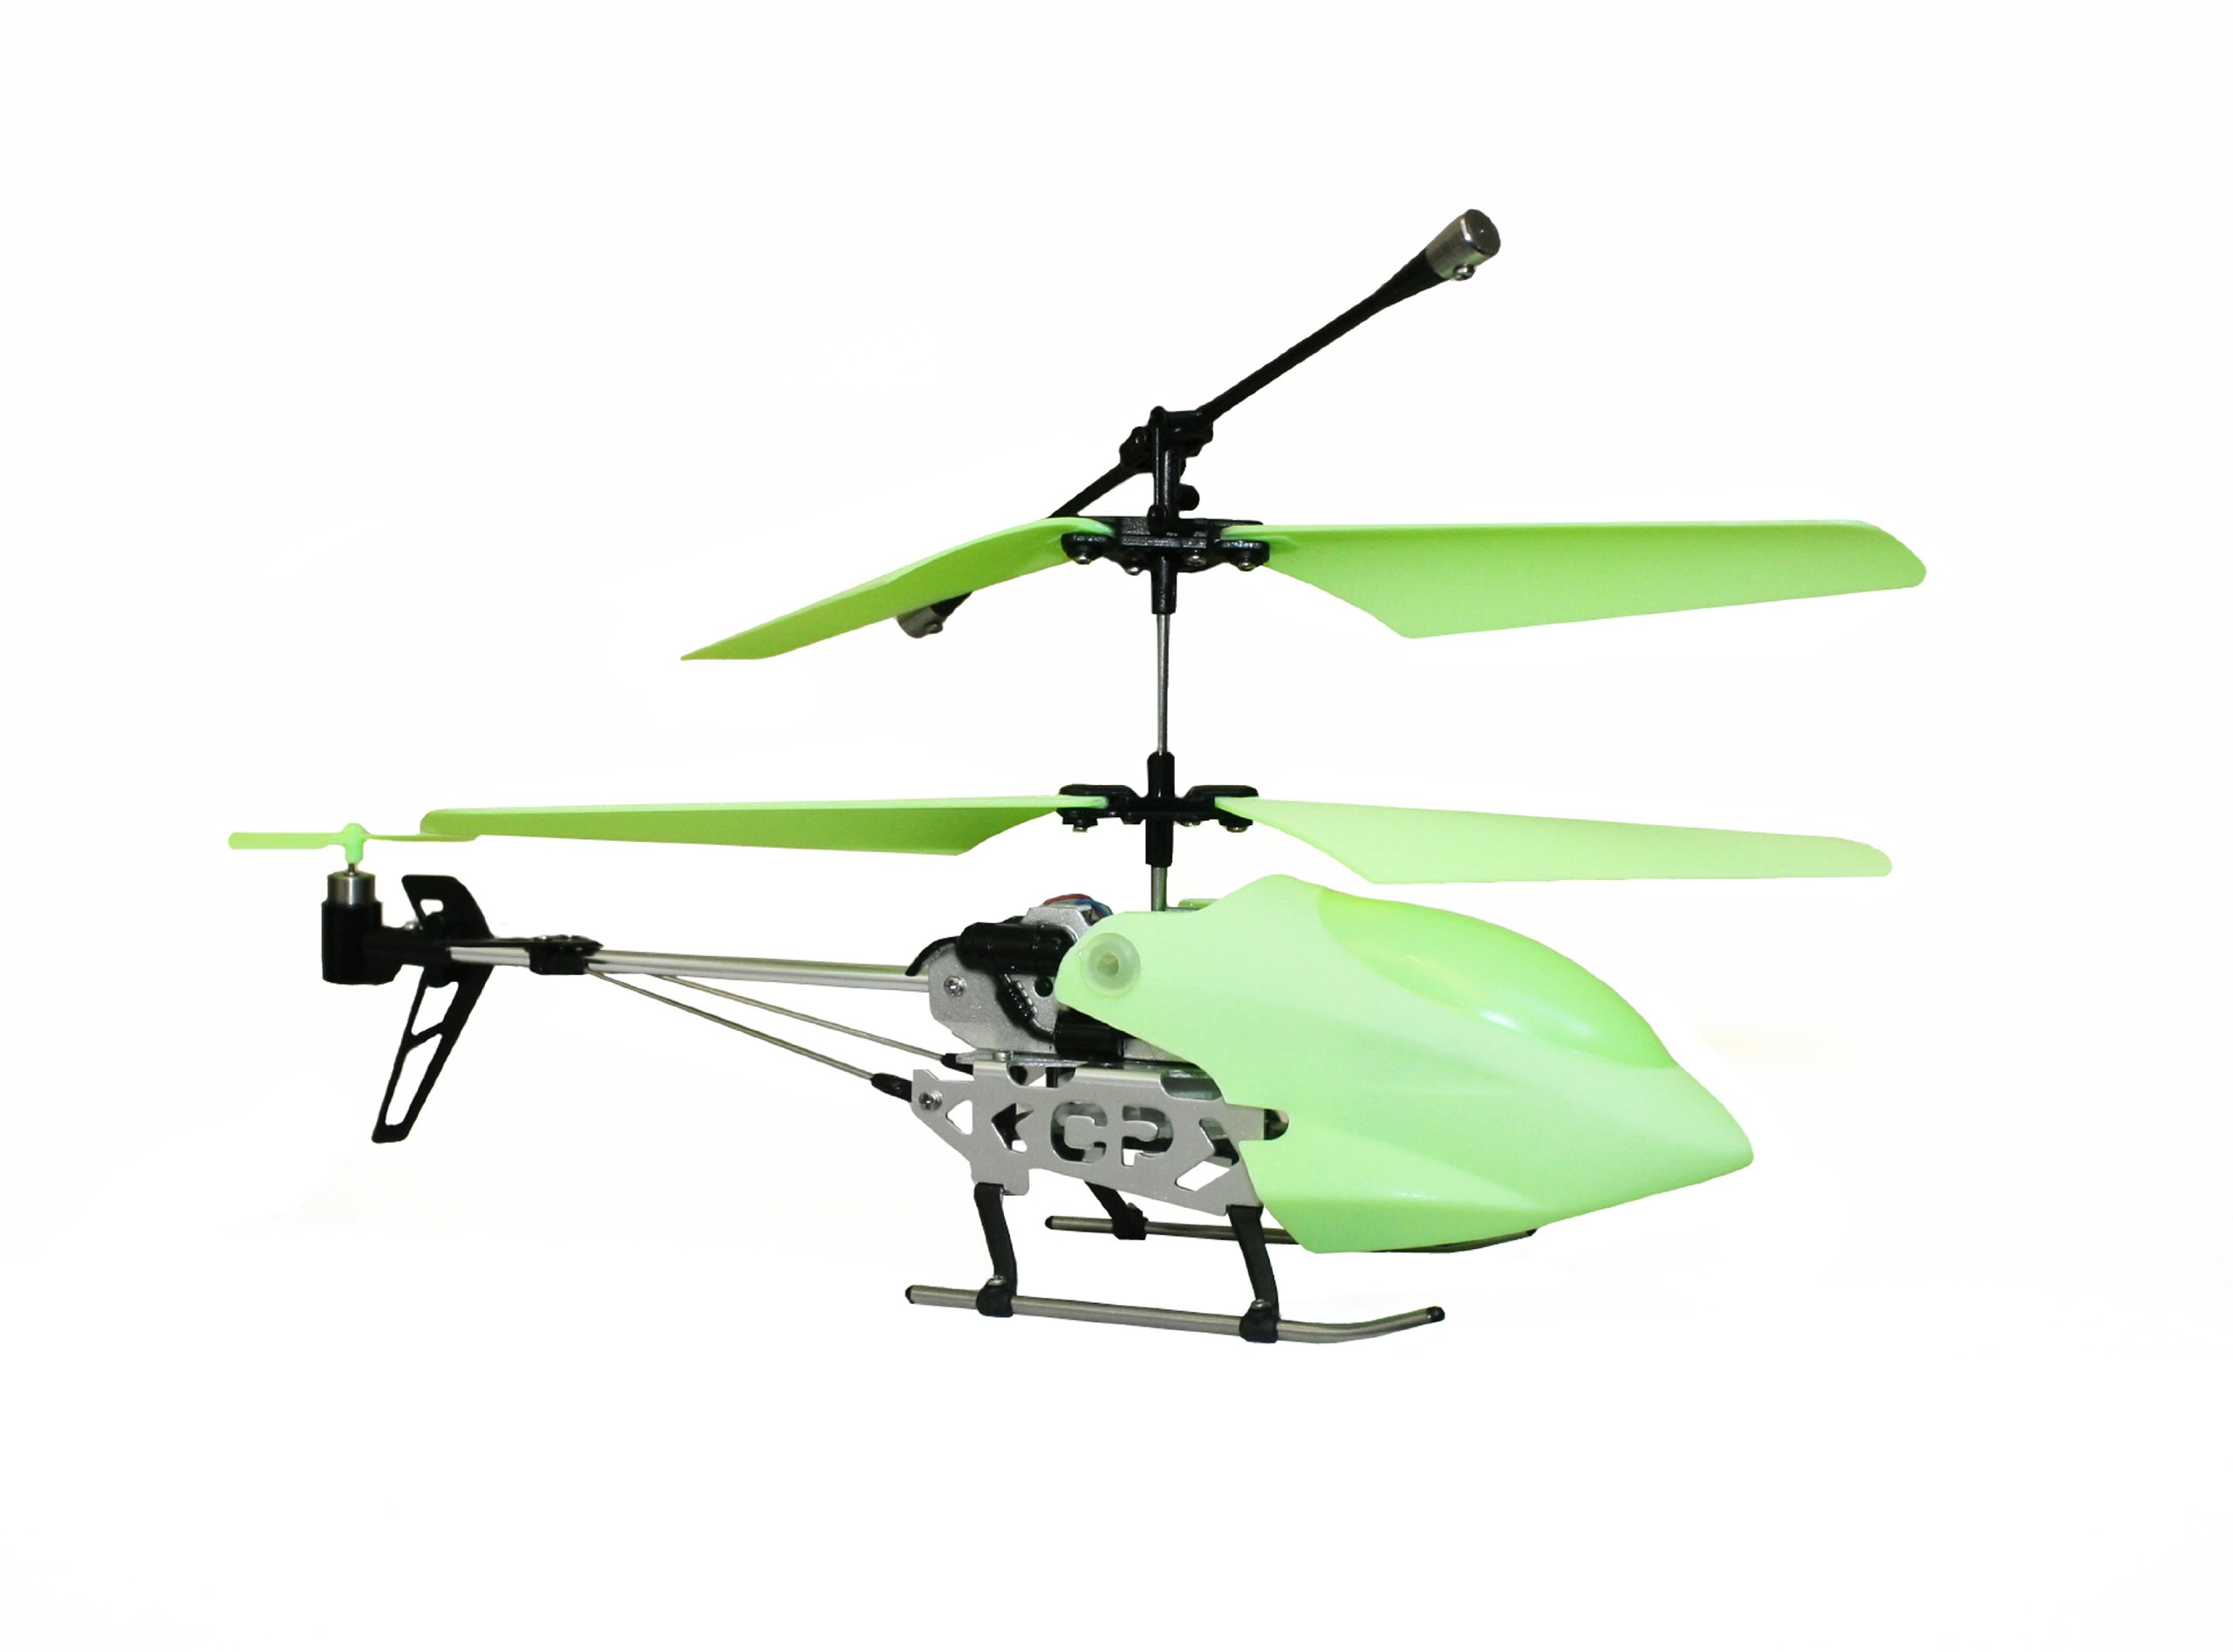 THUMBS UP Thumbsup UK, Glow in The Dark RC Helicopter by THUMBS UP